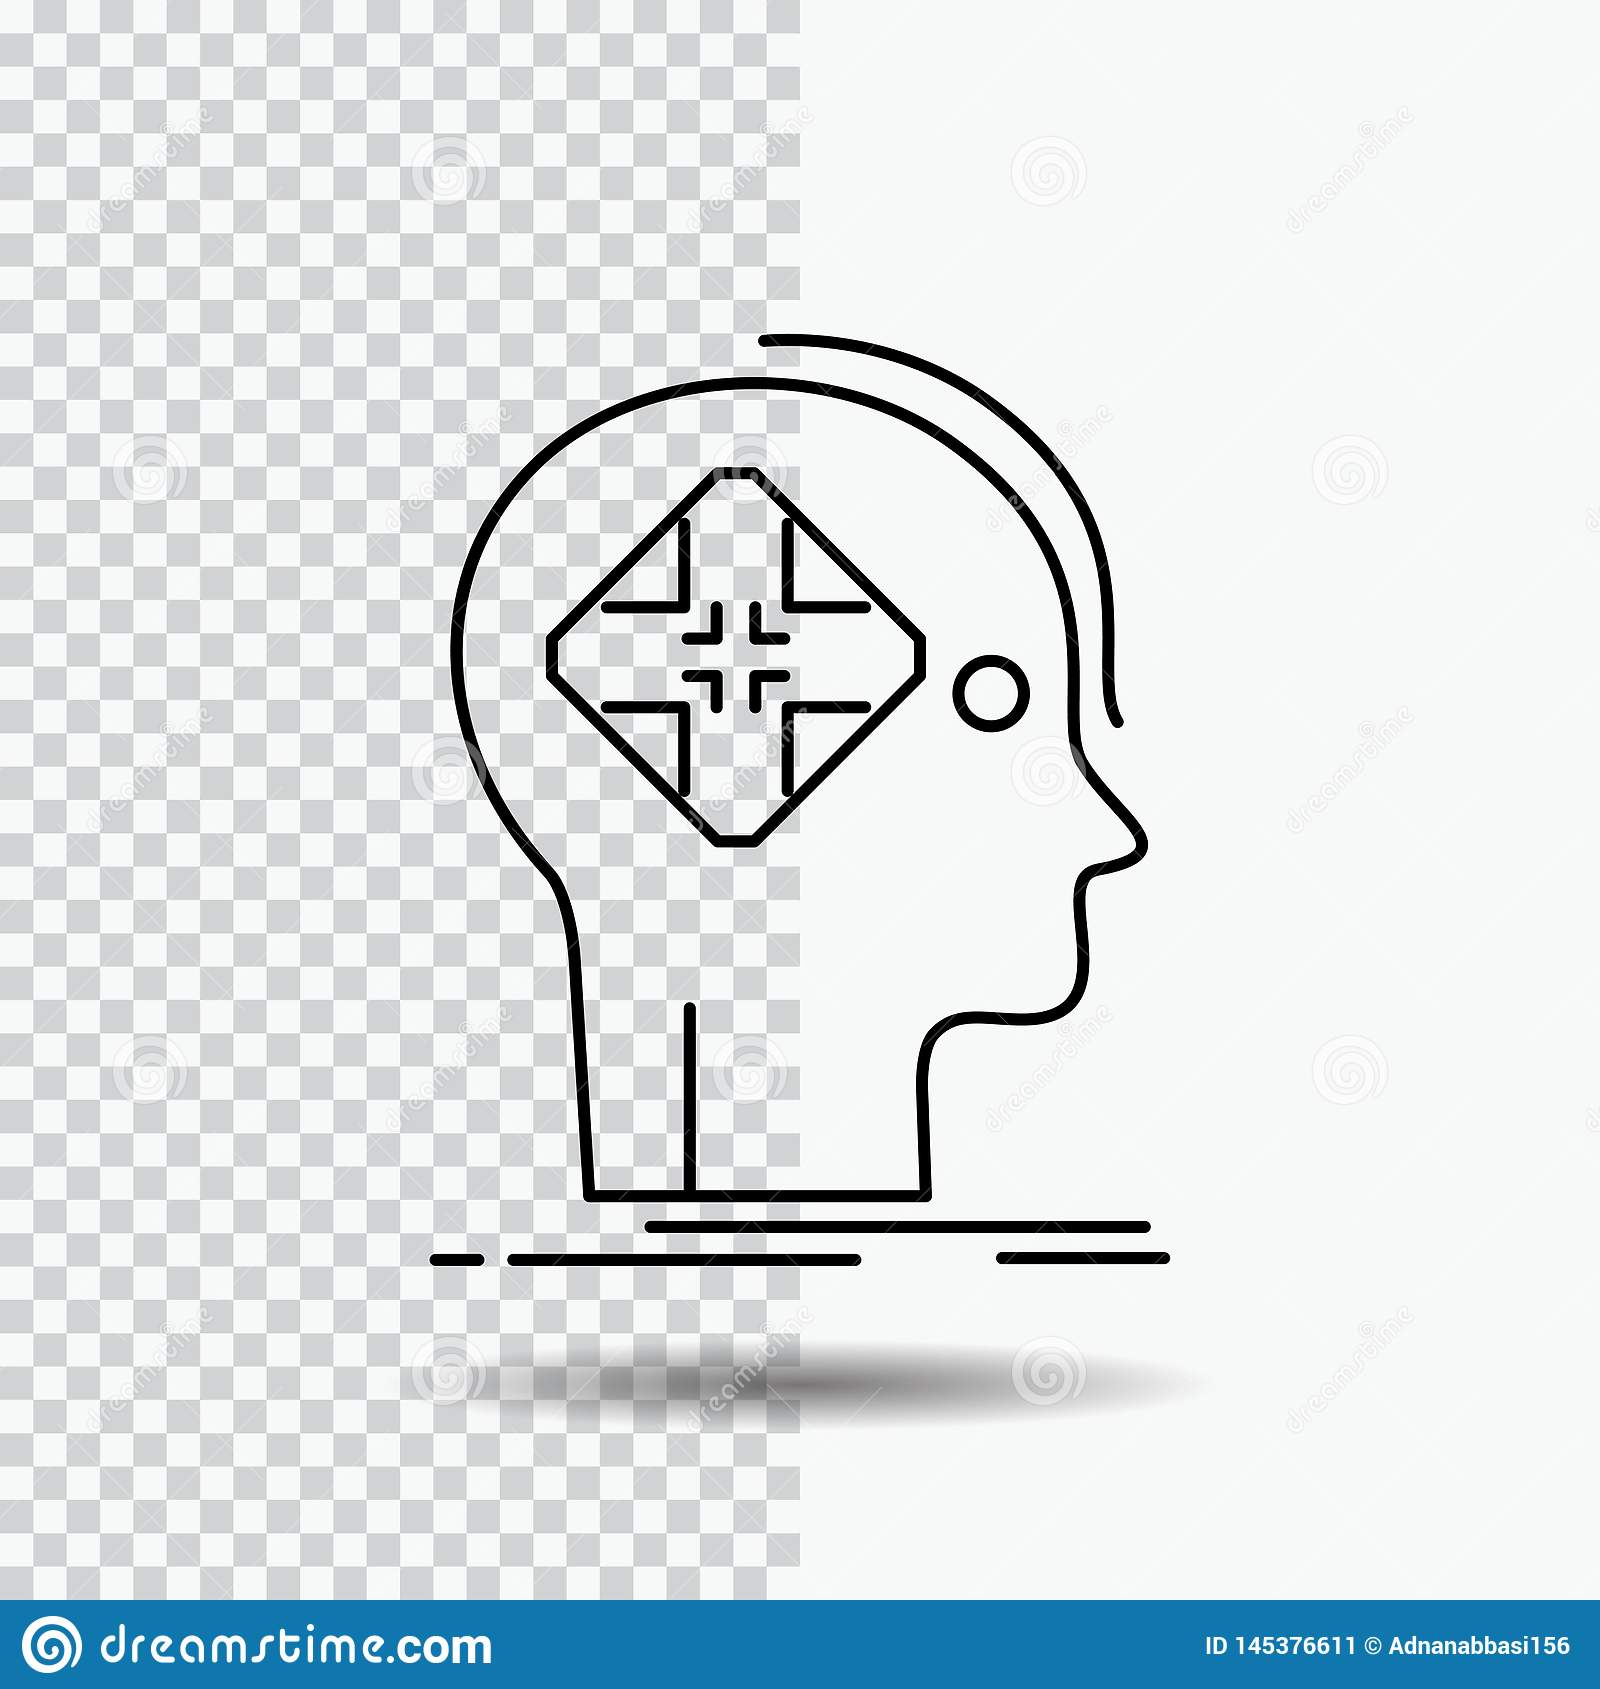 Advanced, cyber, future, human, mind Line Icon on Transparent Background. Black Icon Vector Illustration